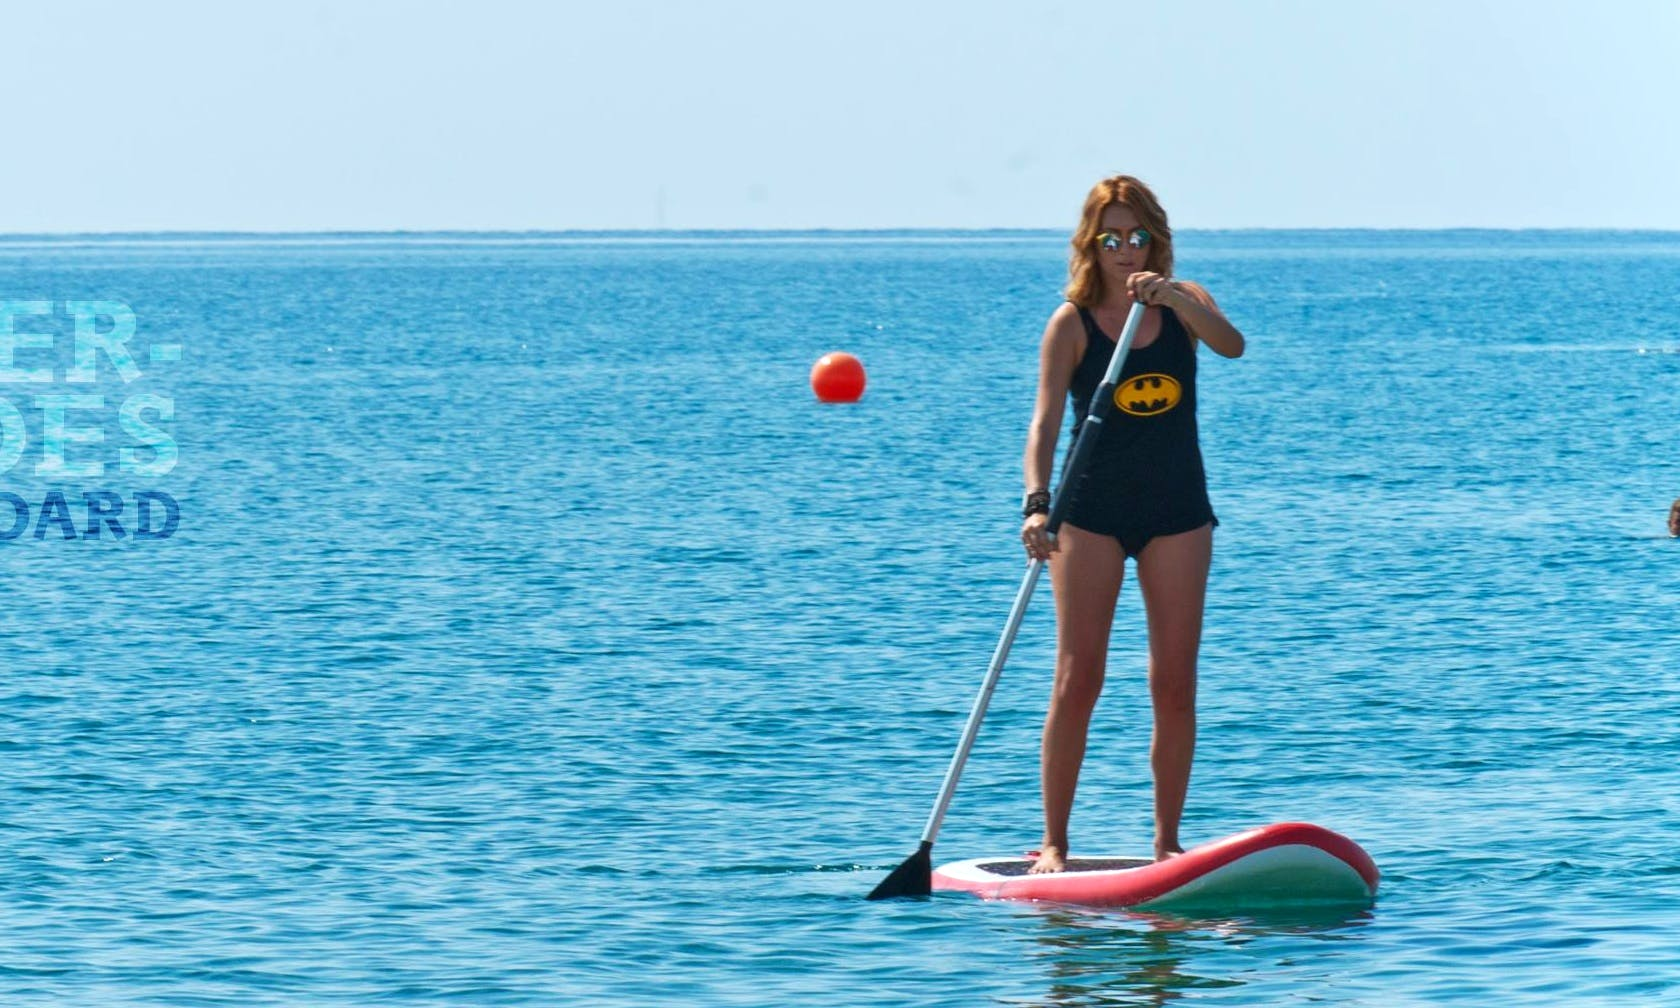 Exciting Stand Up Paddleboarding Adventure In Oroklini, Larnaca